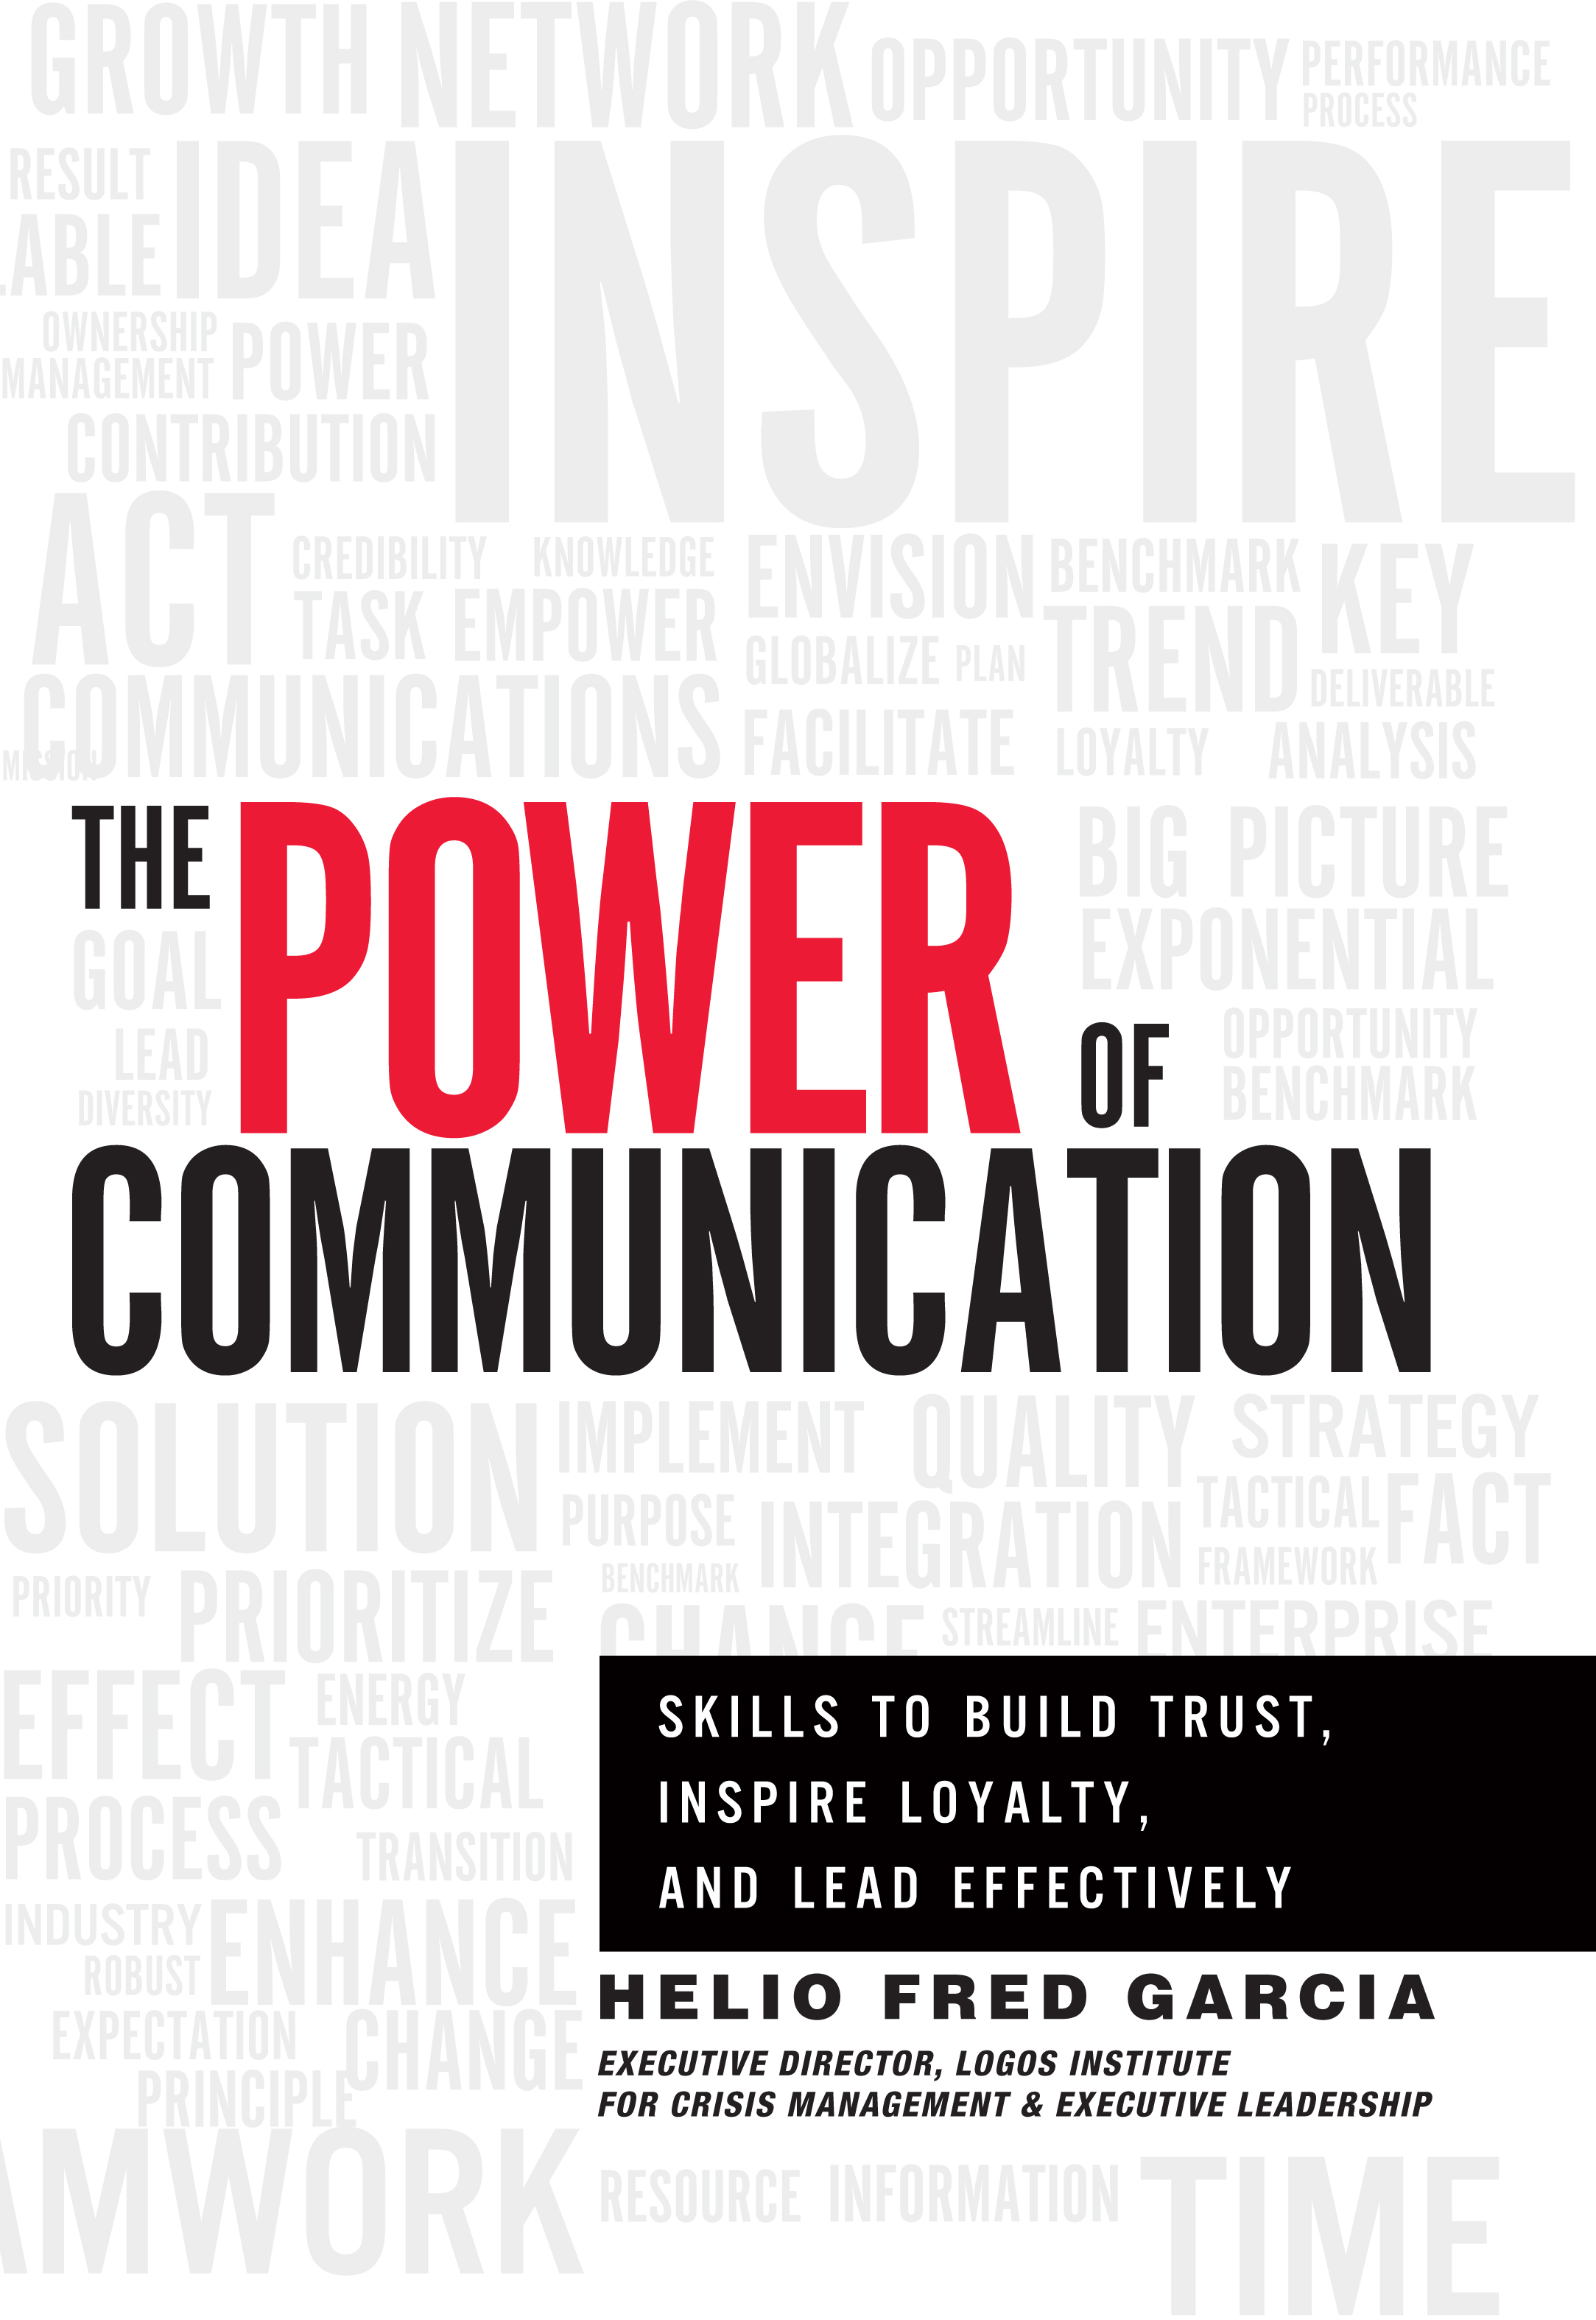 Power Lead Communication : Worth reading the power of communication skills to build